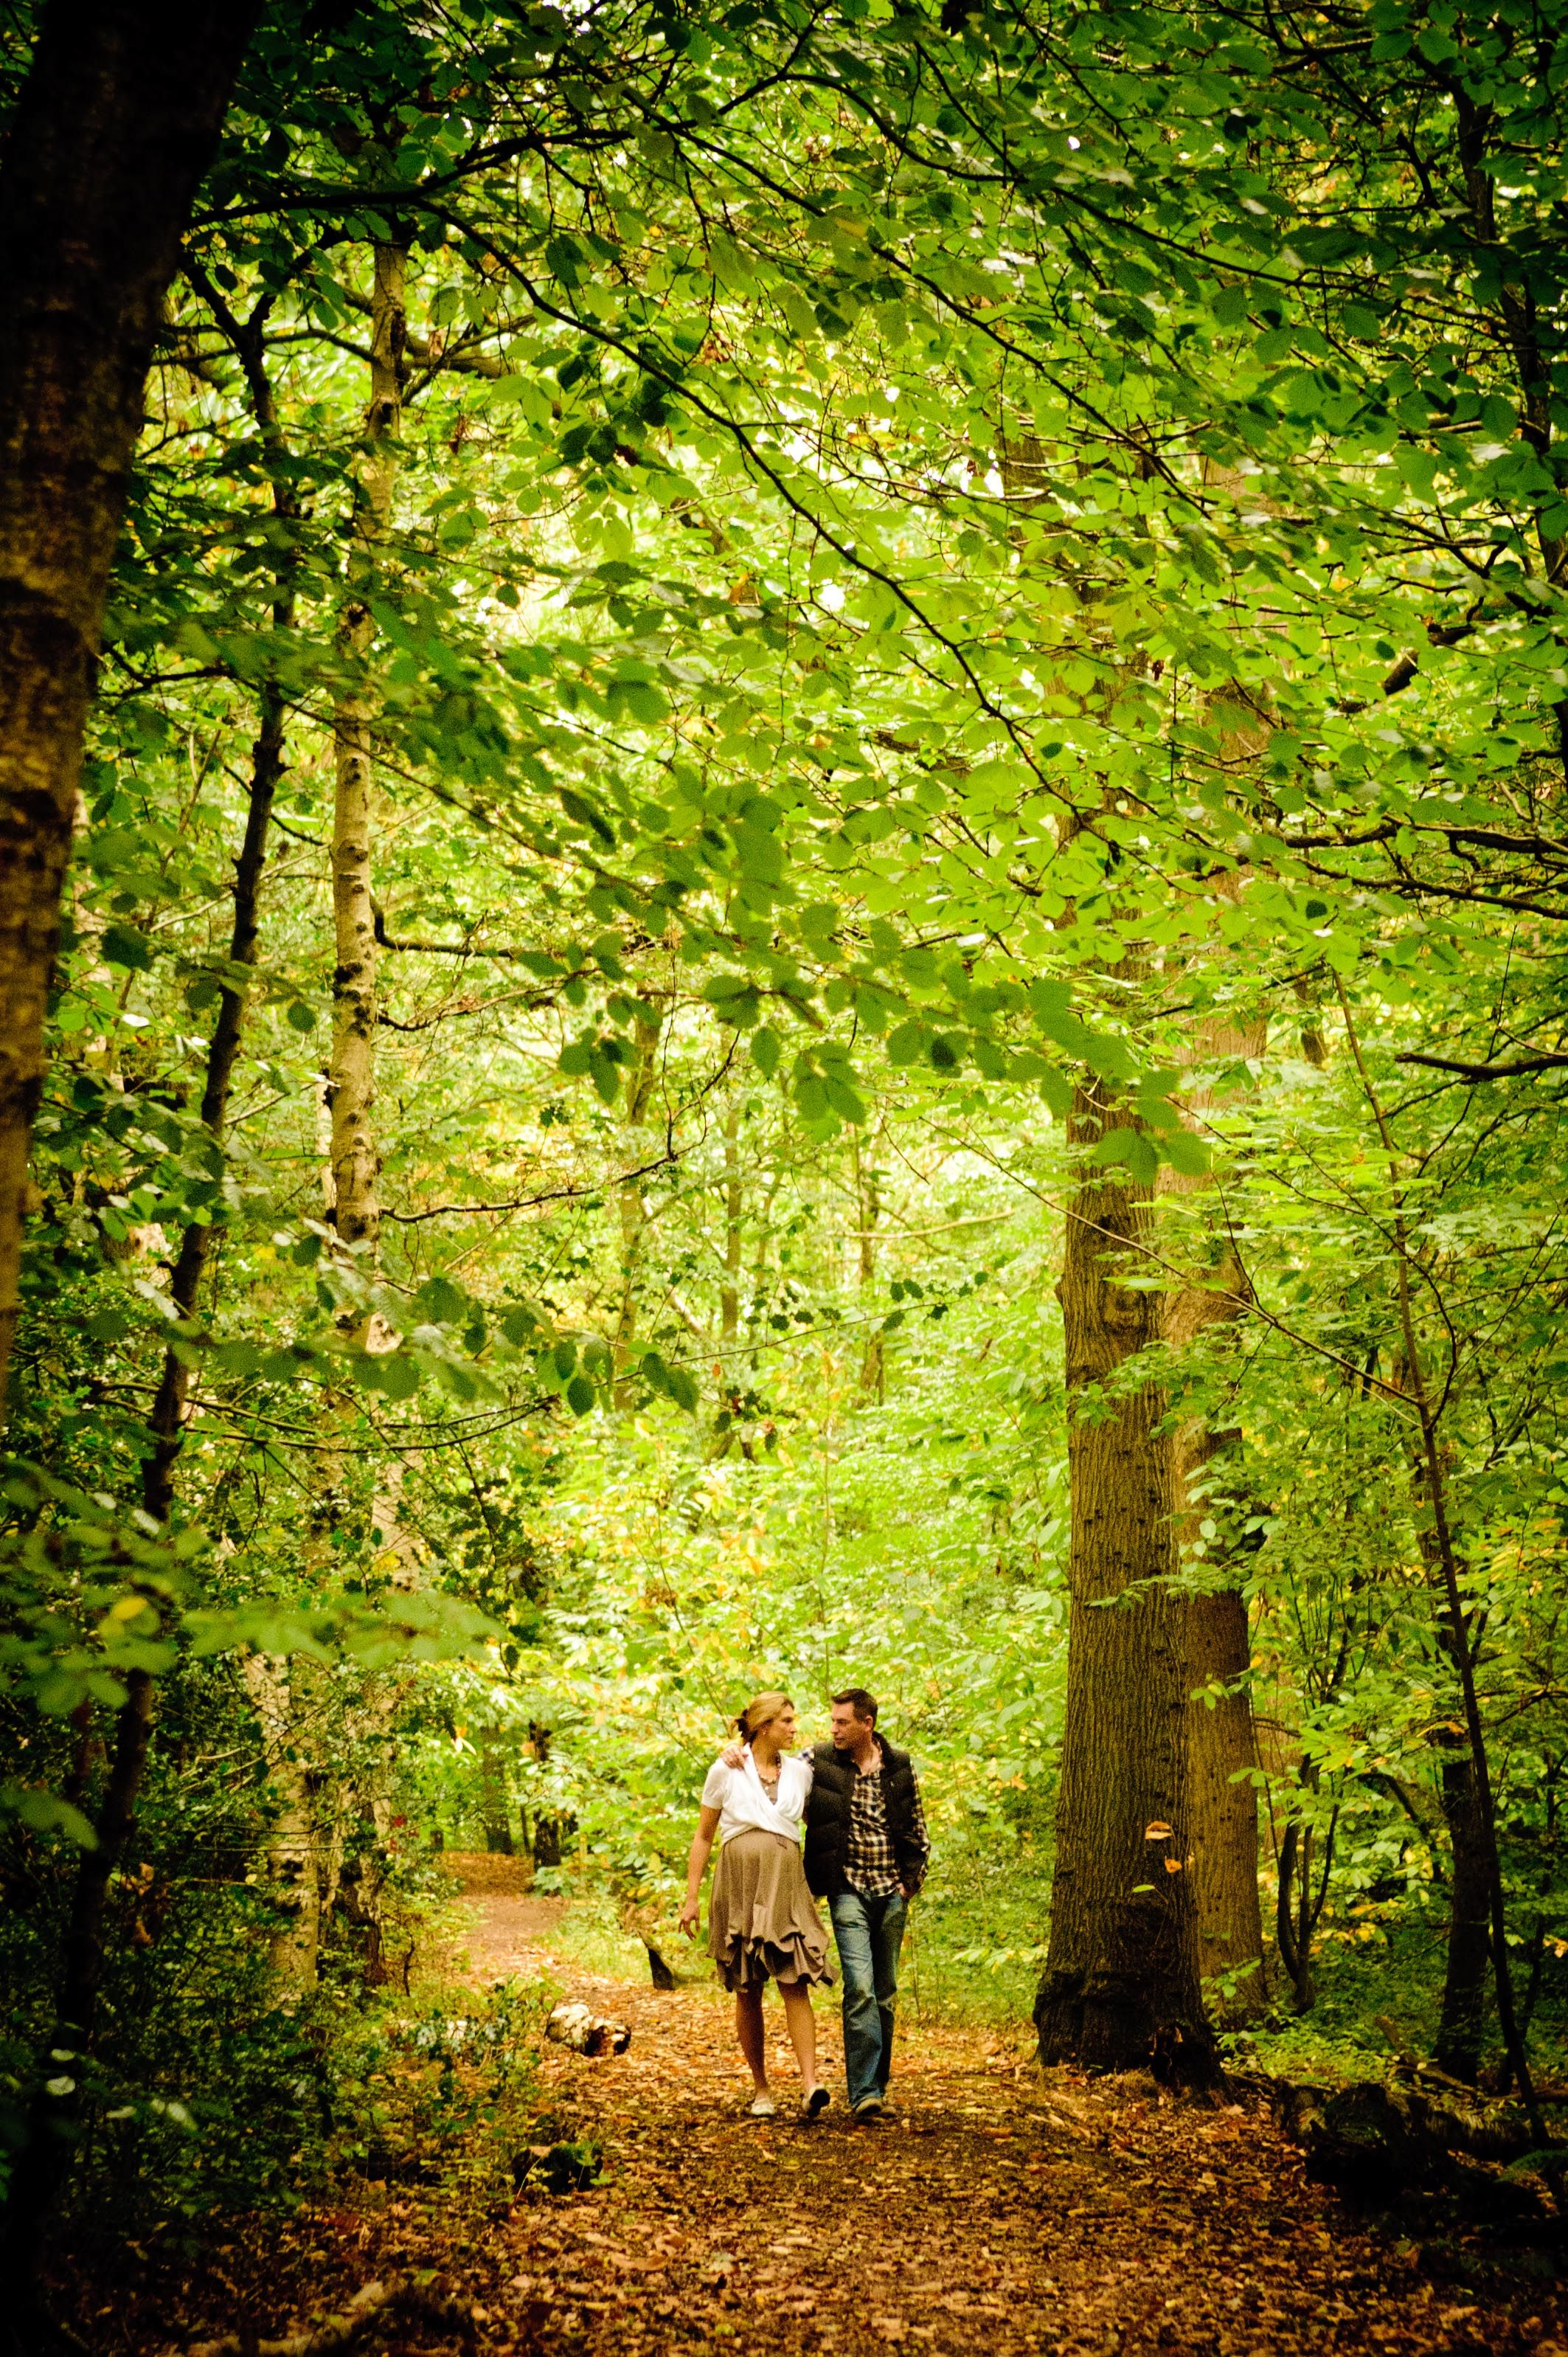 Couples Woods Photoshoot Google Search Country Photography Photo Photoshoot